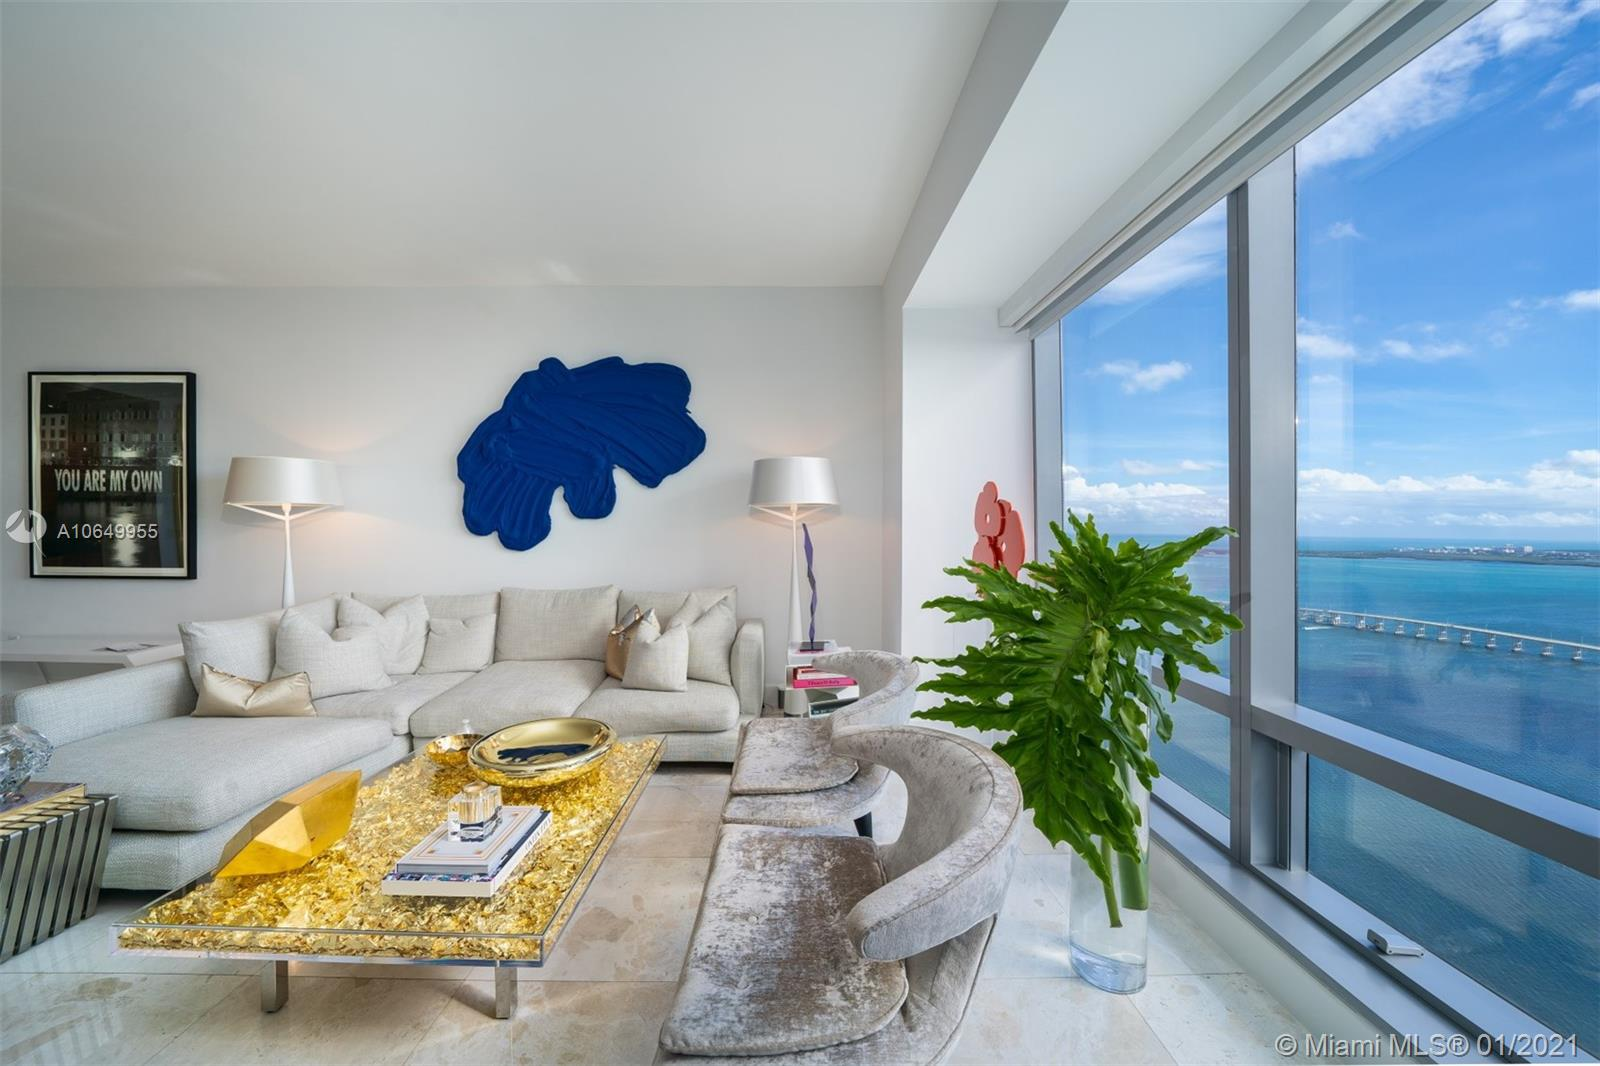 THIS IMMACULATE RESIDENCE ON THE 62ND FLOOR AT FOUR SEASONS RESIDENCES OFFERS BREATH-TAKING VIEWS OF THE ATLANTIC OCEAN & BISCAYNE BAY AS FAR AS THE EYES CAN SEE. TOP-OF-THE-LINE FINISHES